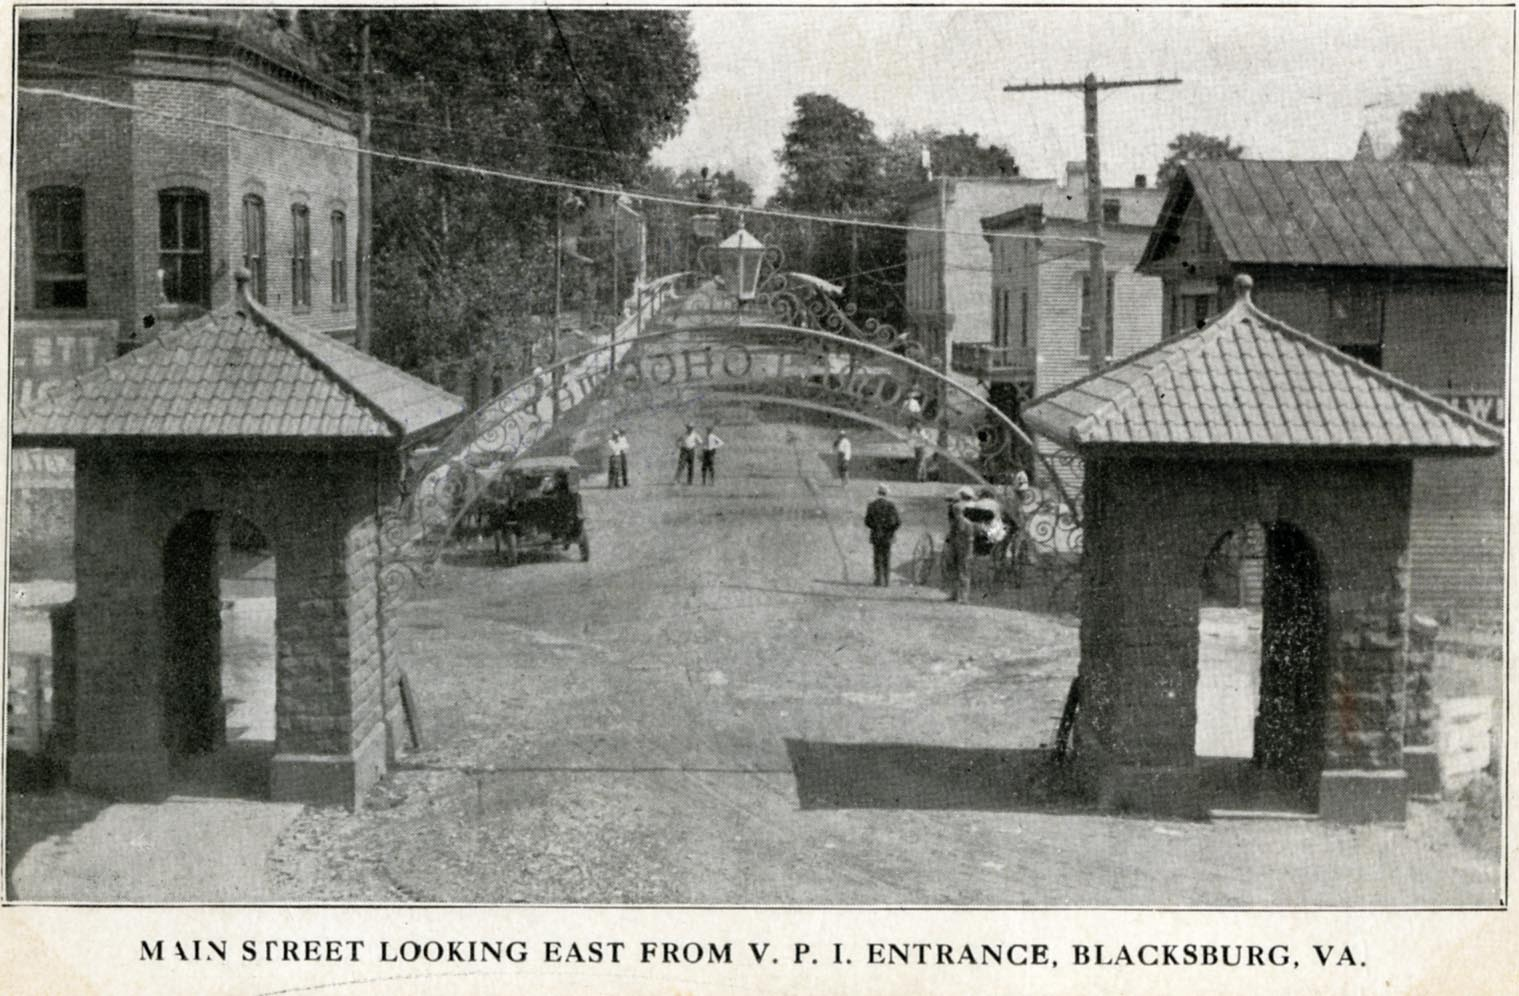 This image is actually the front of a postcard, sent in 1917. By then, the metal gates from the 1904 photograph were actually brick structures with a sign and Main St. was no longer a dead-end, but an entrance to campus!